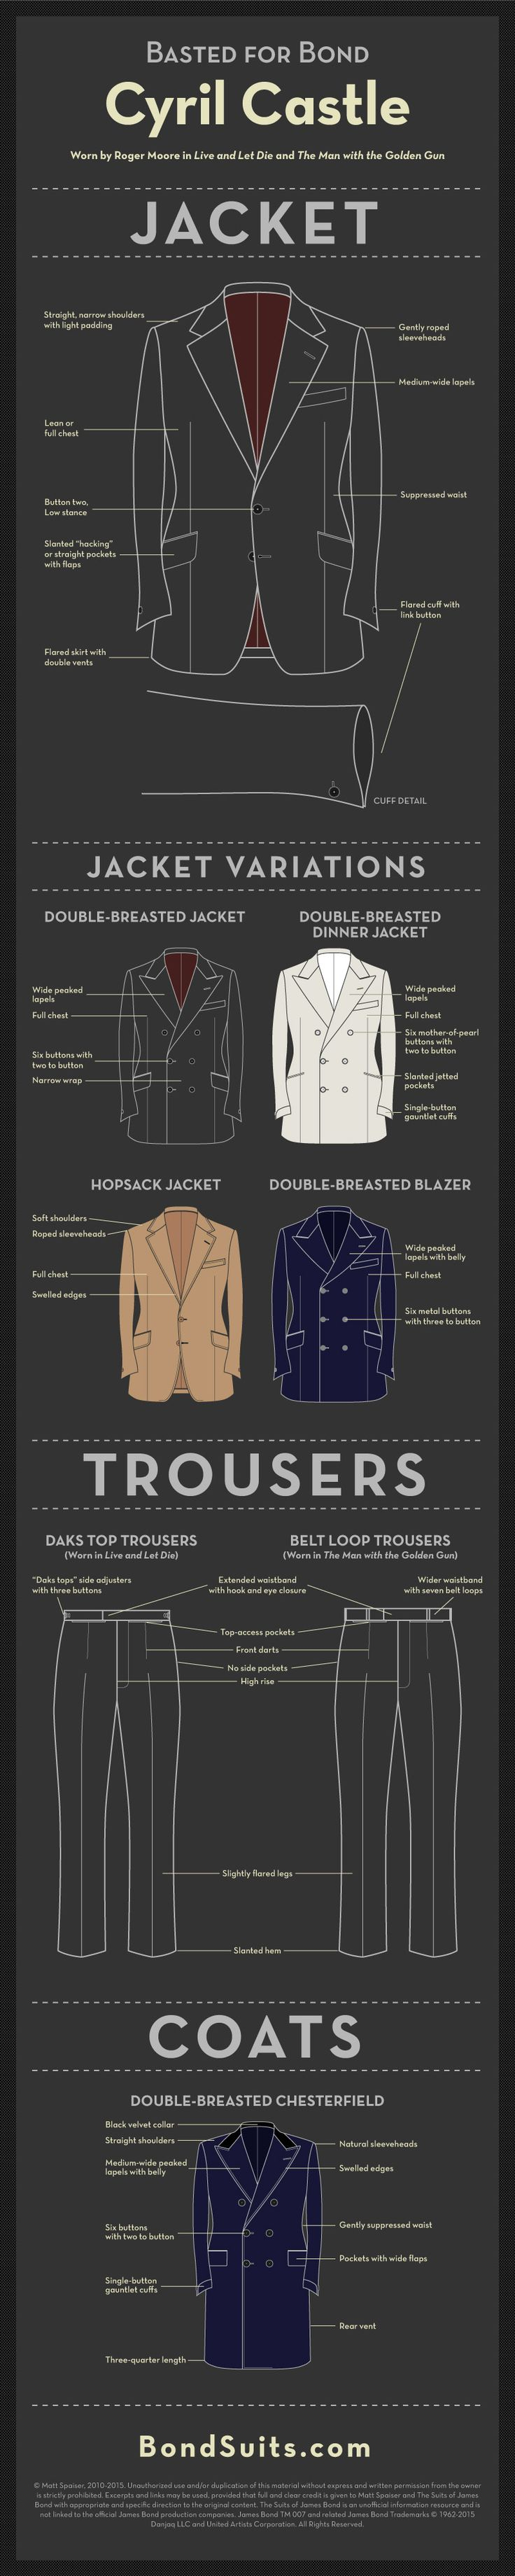 """Basted for Bond"" continues with an infographic that examines the cuts and details of Cyril Castle's jackets (including the silk dinner jacket and tan hopsack jacket), trousers and chesterfield coat that he made for Roger Moore to wear in Live and Let Die and … Continue reading →"